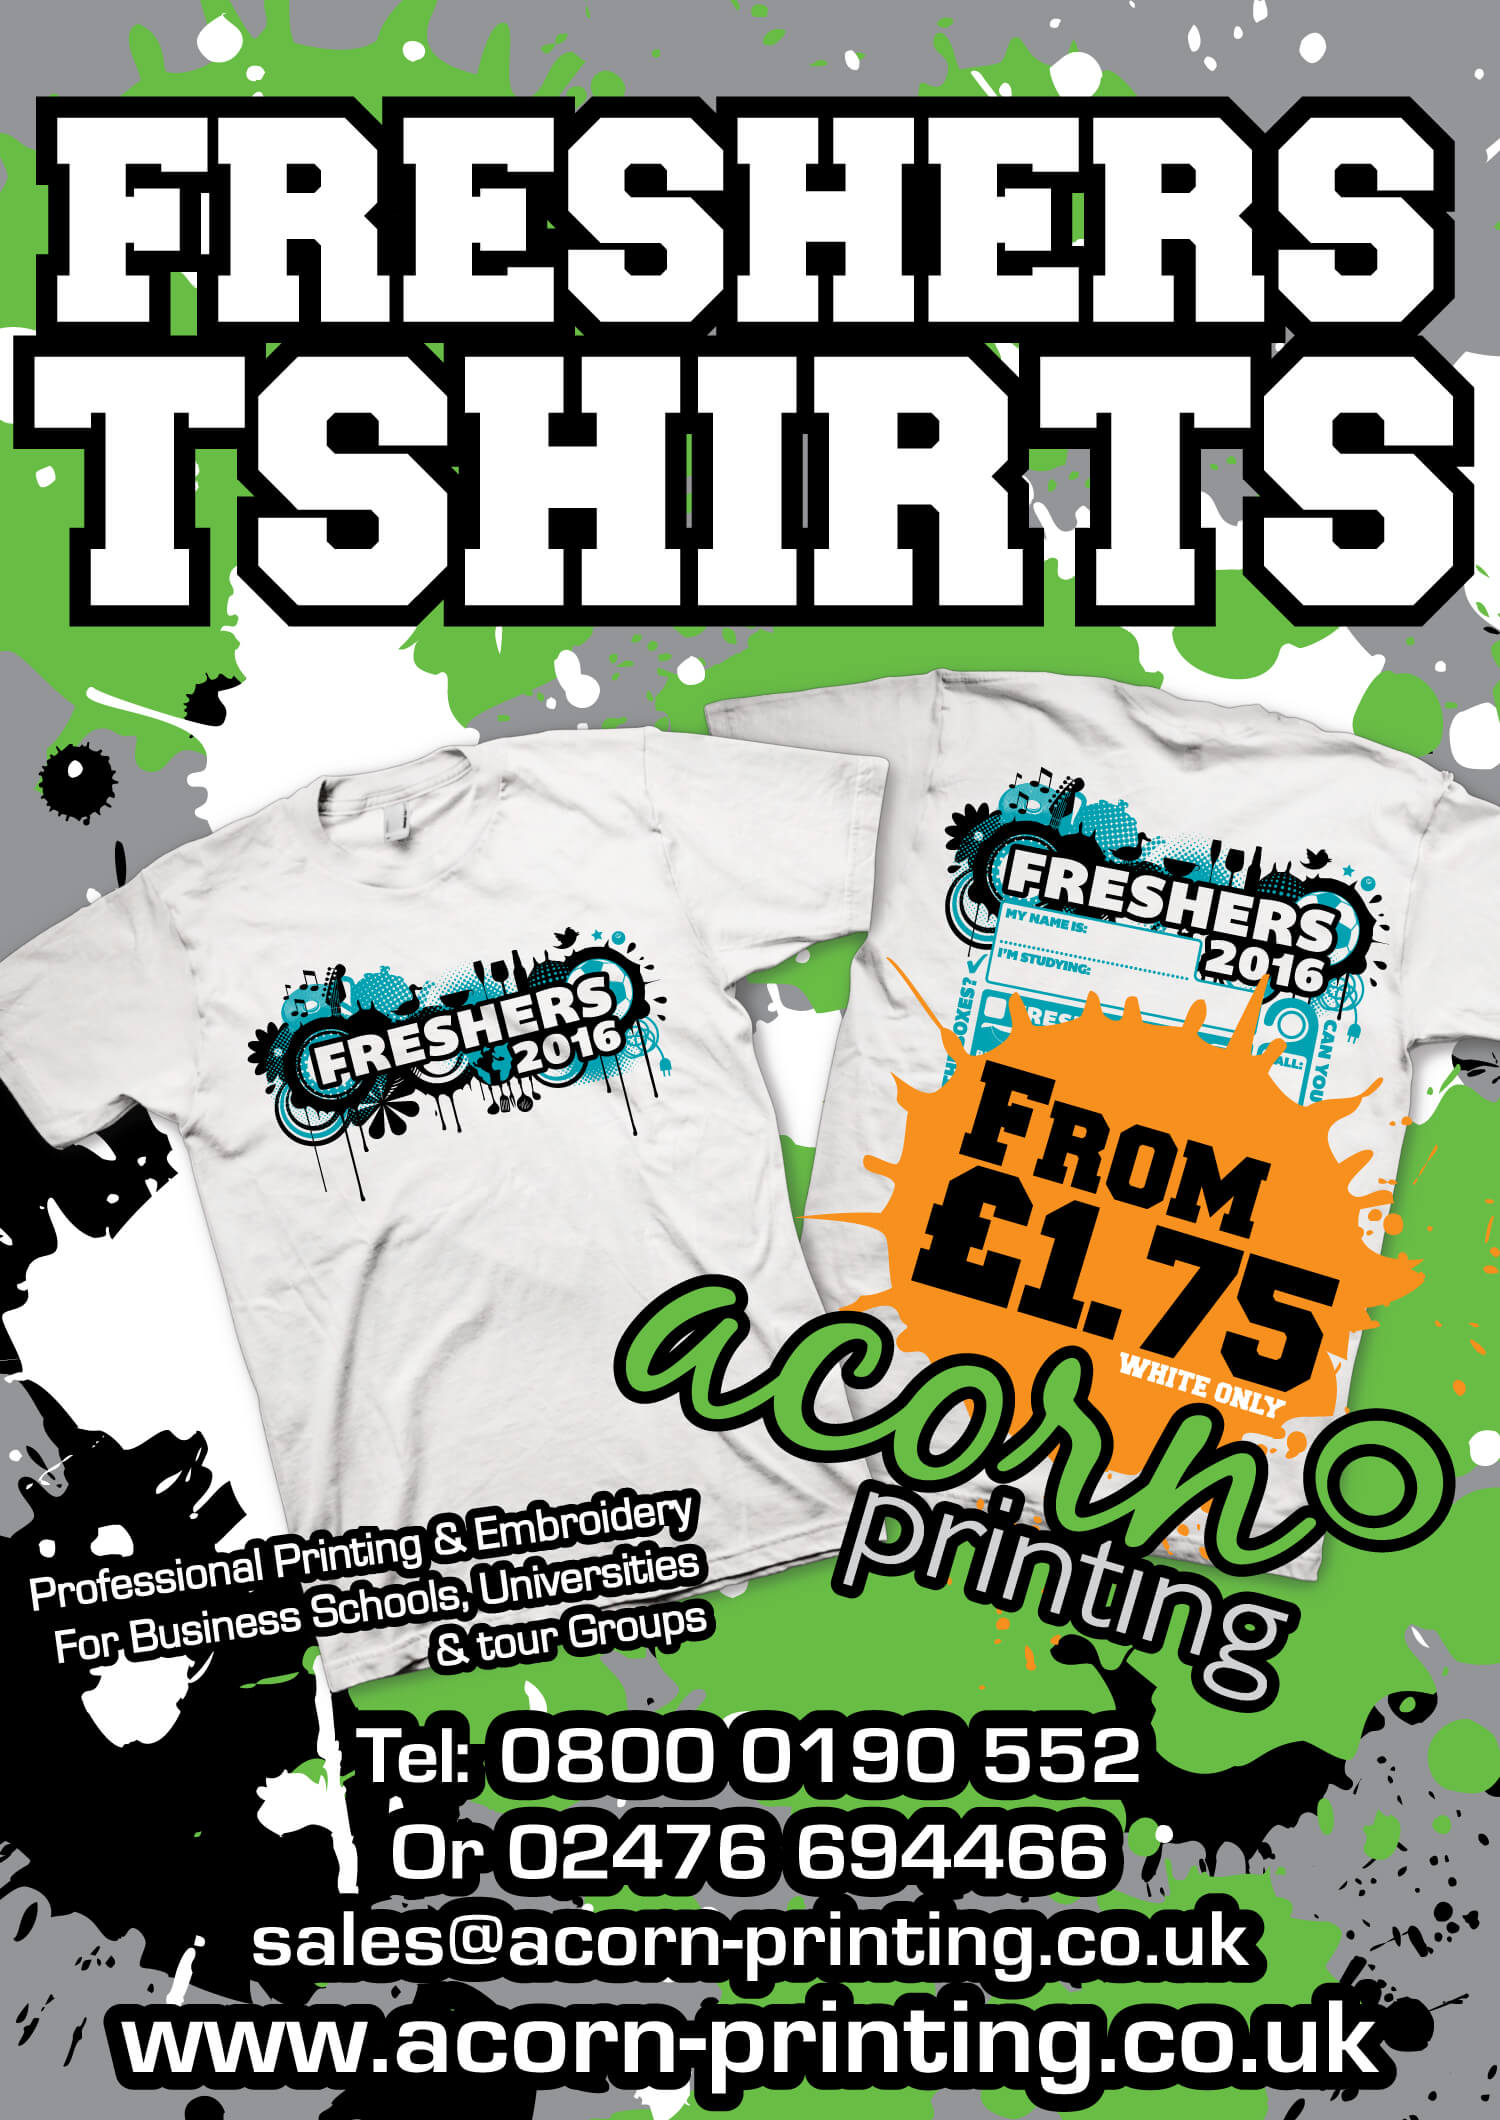 Discount freshers t-shirts printed